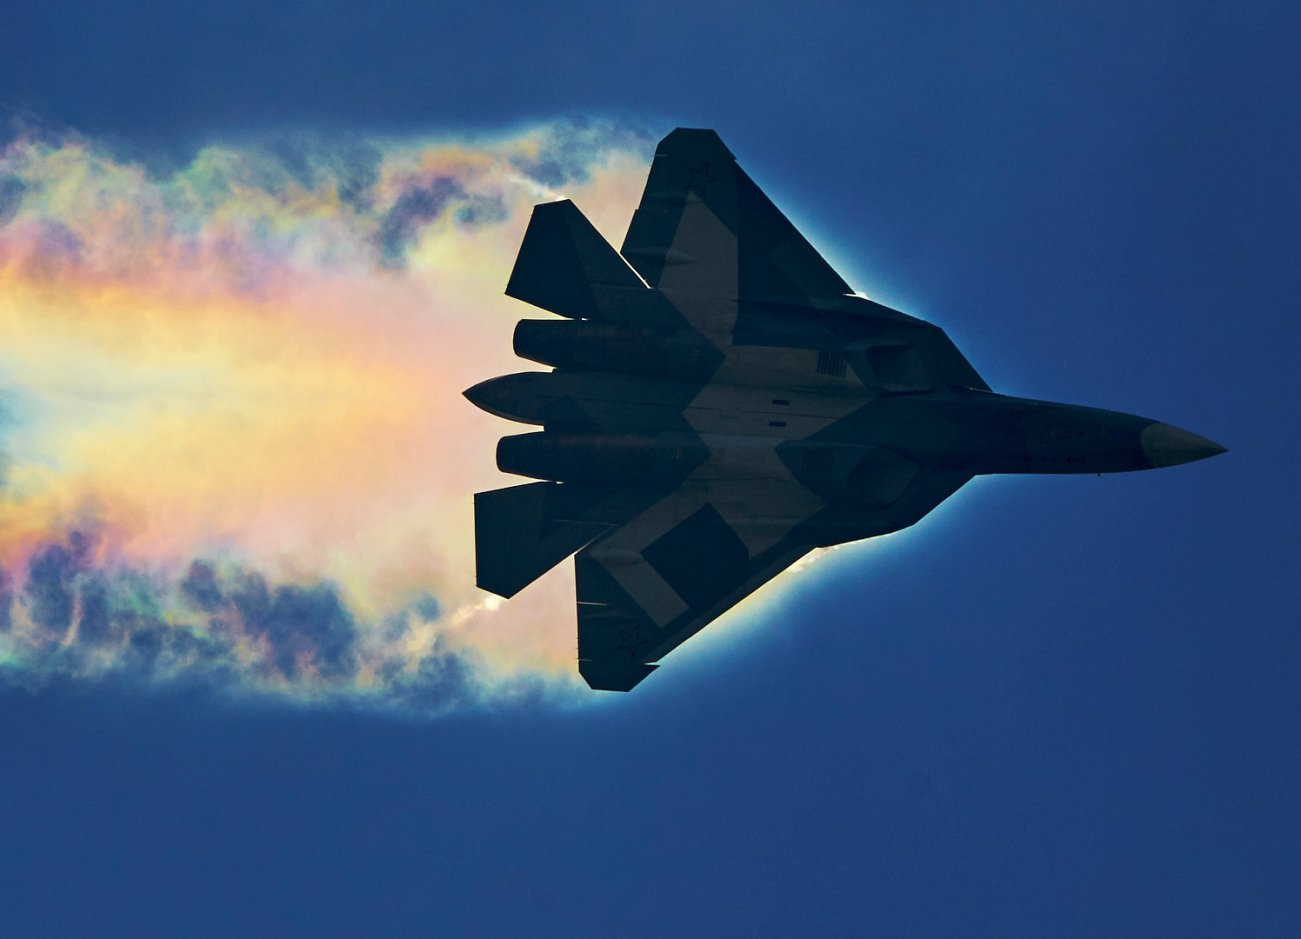 Want to Buy a Stealth Fighter? Russia's Su-57 Is For Sale